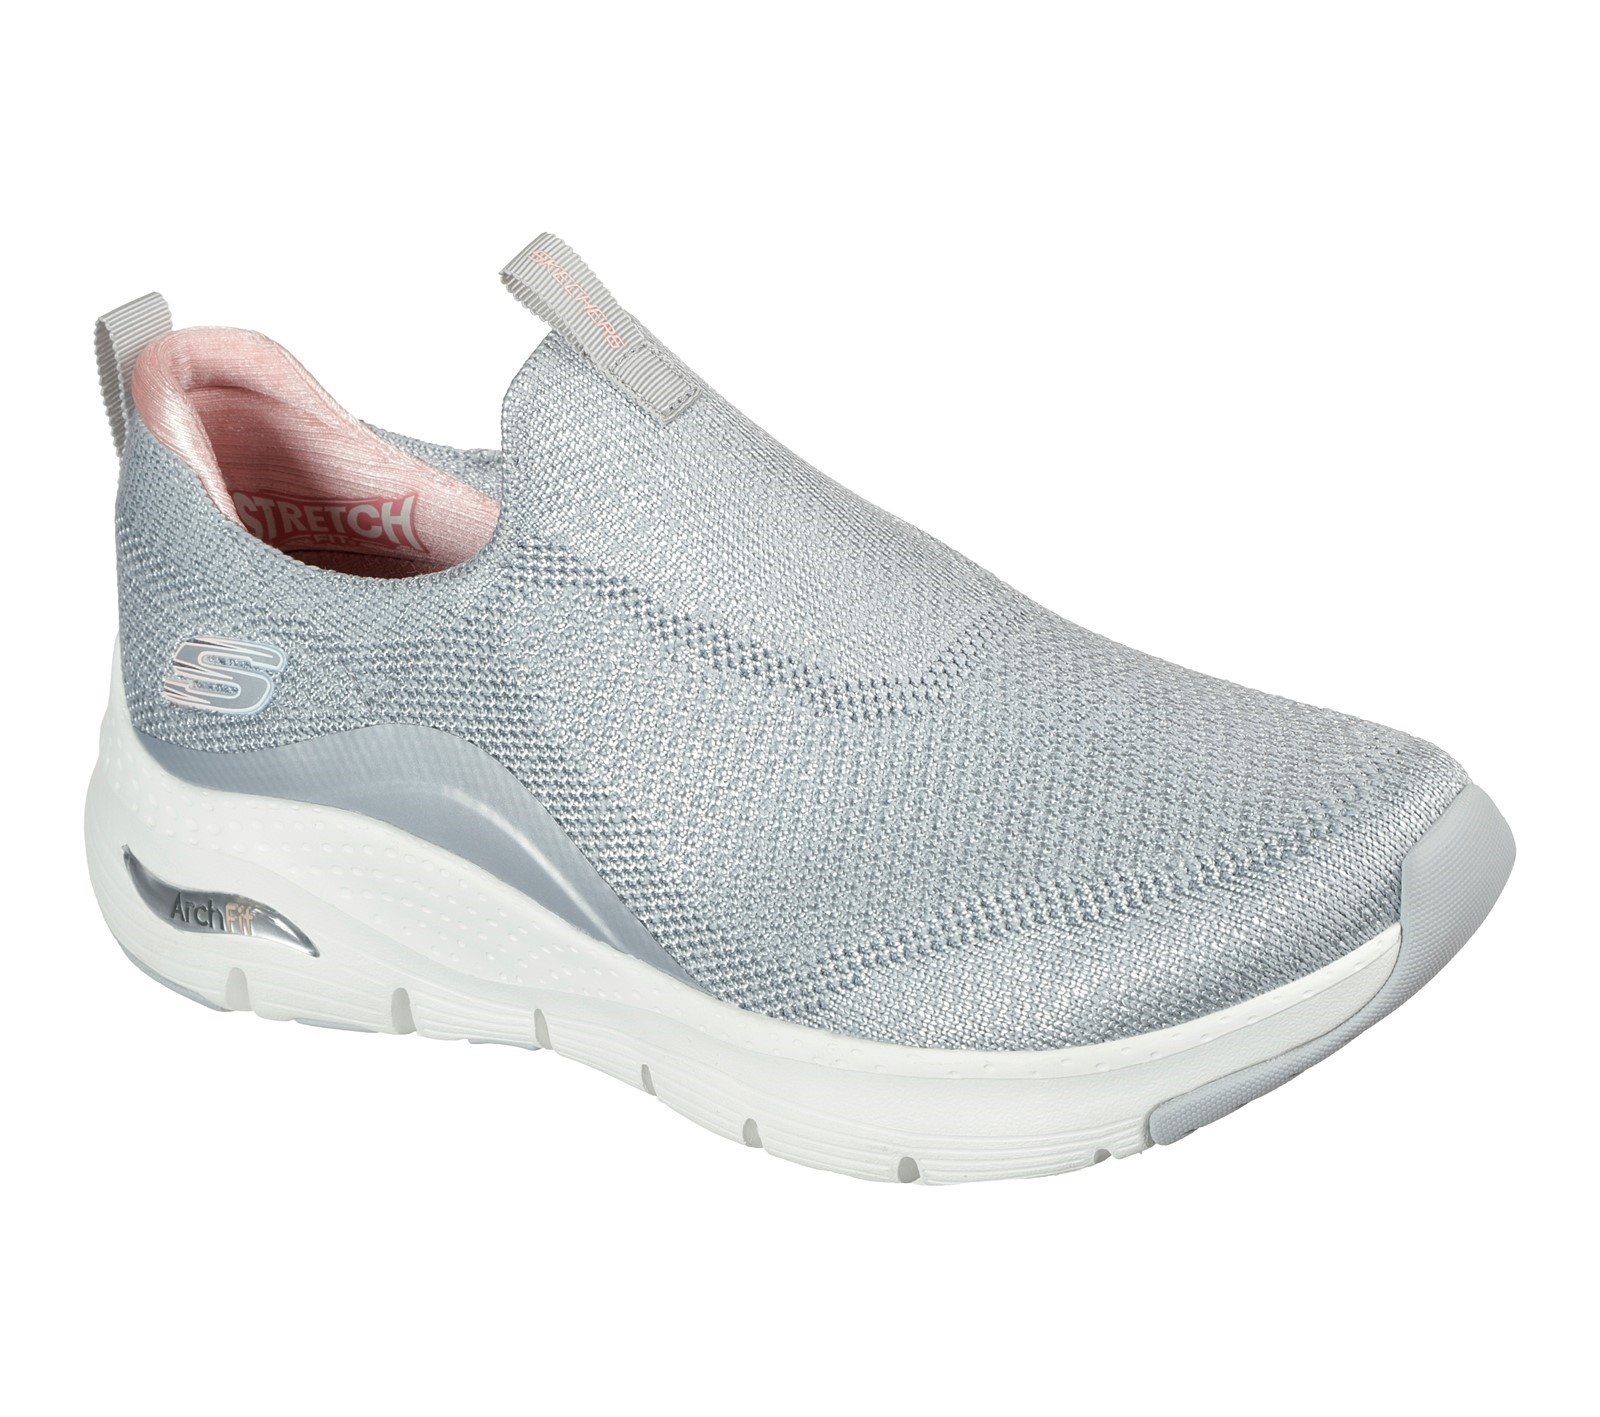 Skechers Women's Arch Fit Keep It Up Sport Trainer Various Colours 32108 - Light Grey/Pink 3